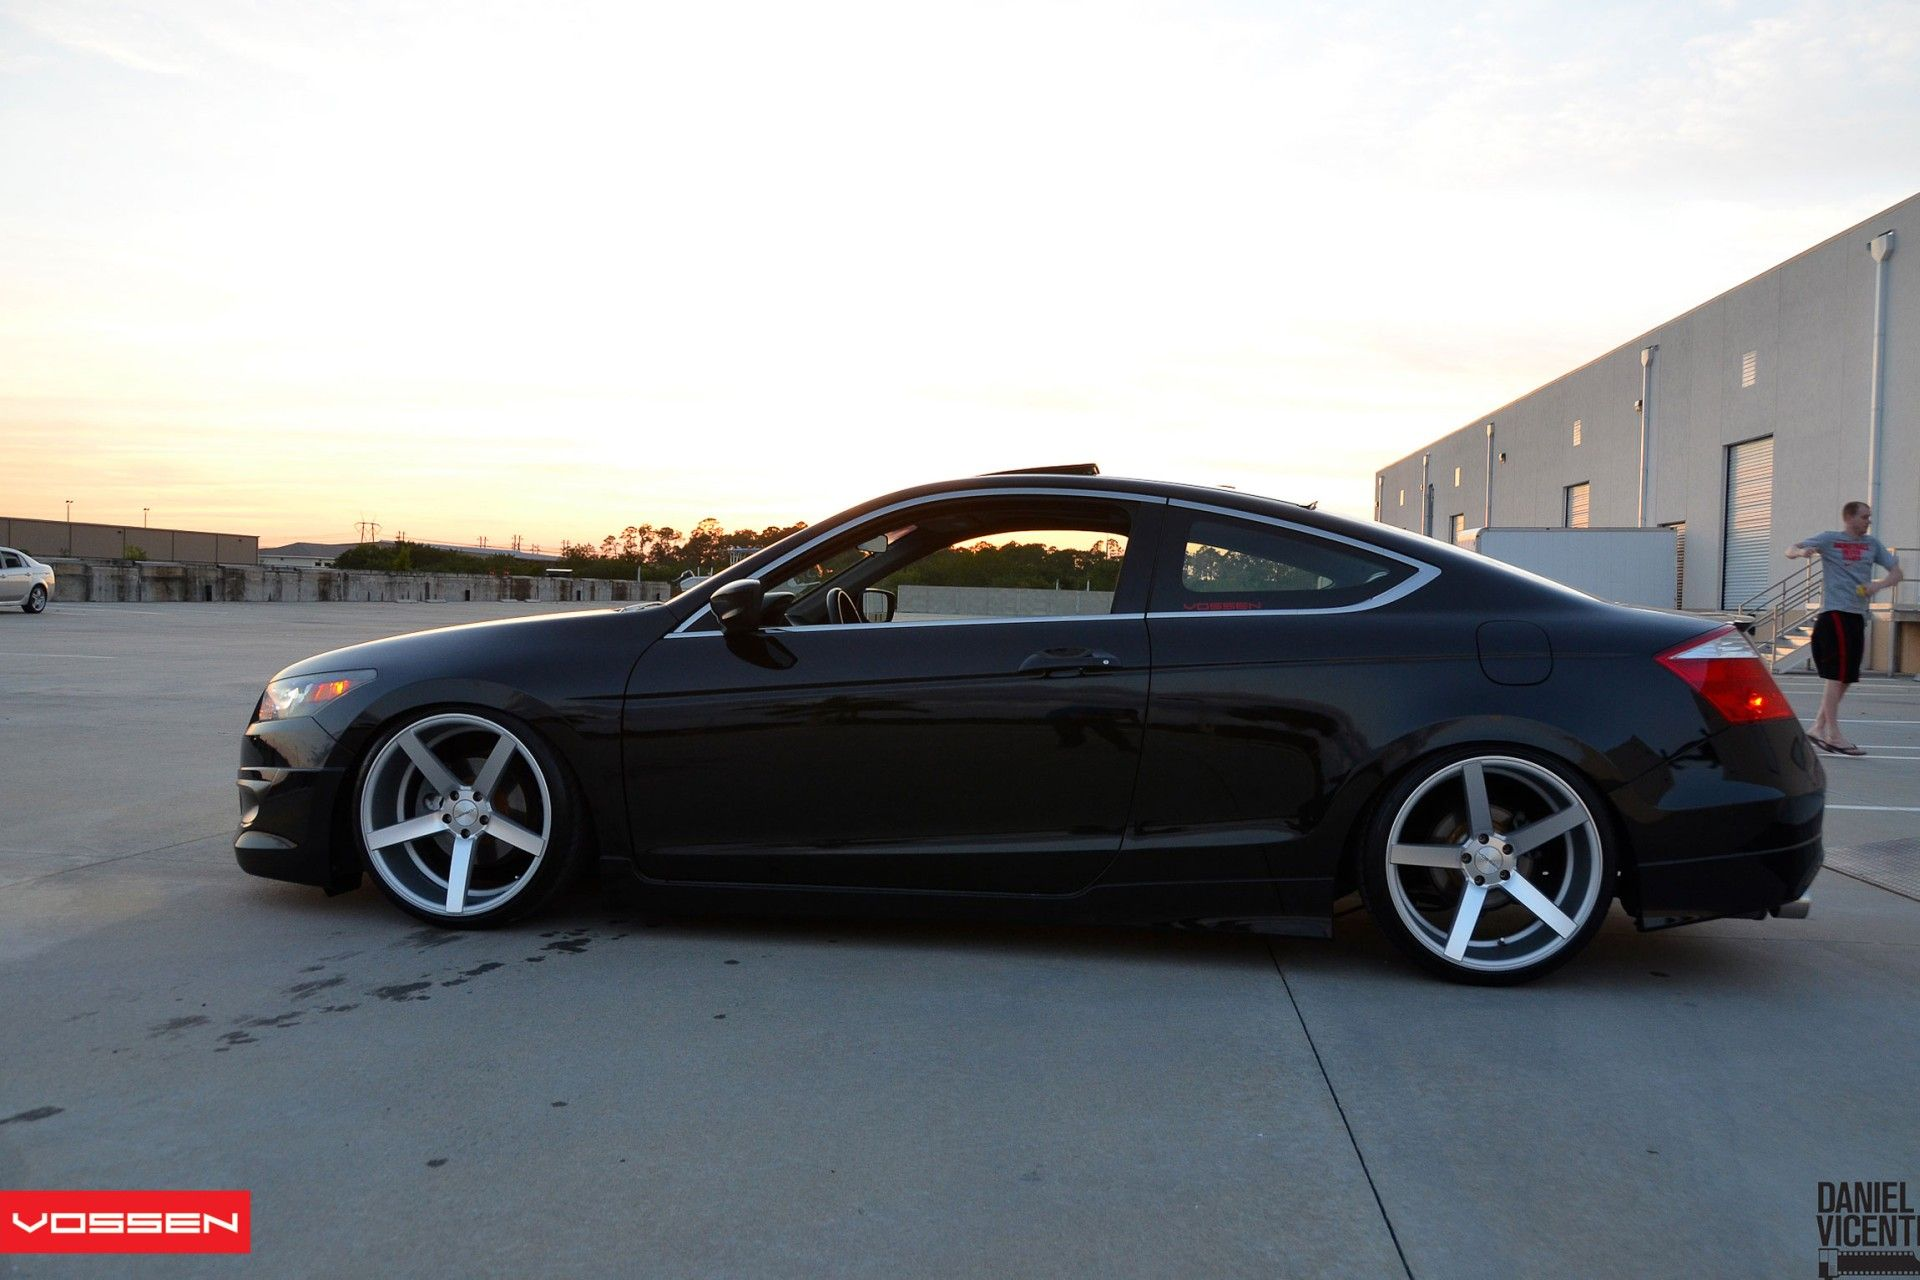 2009 honda civic ex rims on a 2006 accord images